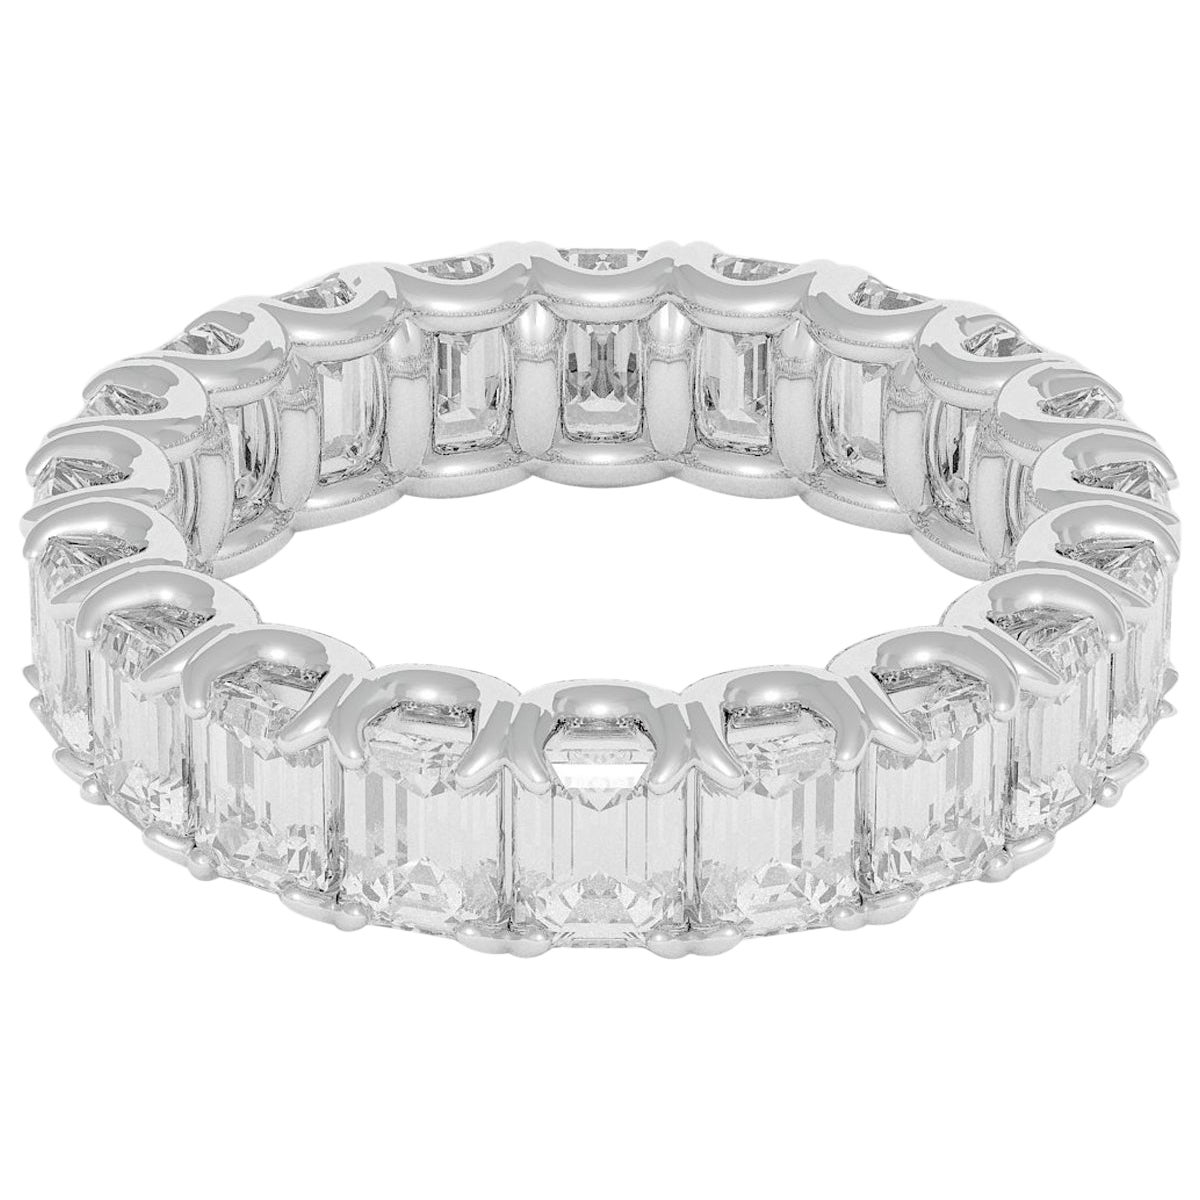 Emilio Jewelry 5.00 Carat Emerald Cut Diamond Eternity Platinum Band